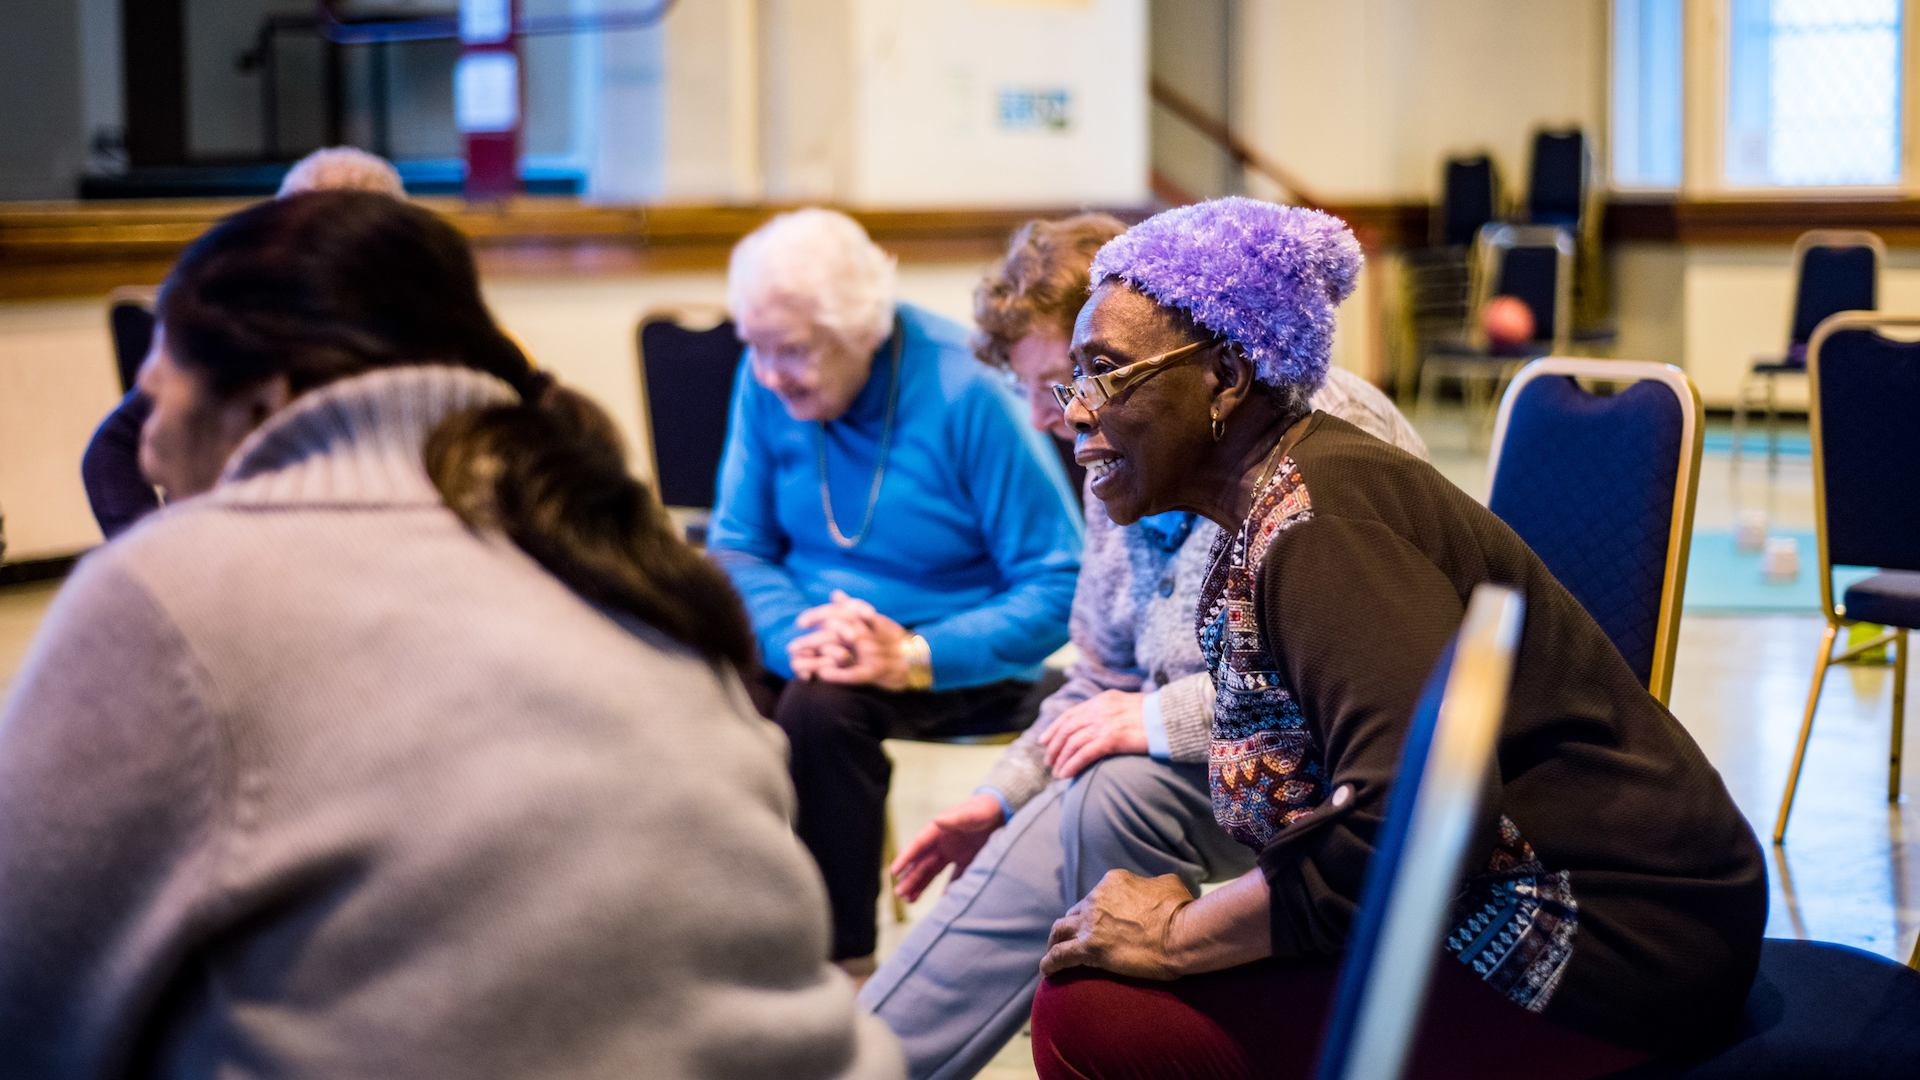 Older people in a falls prevention class